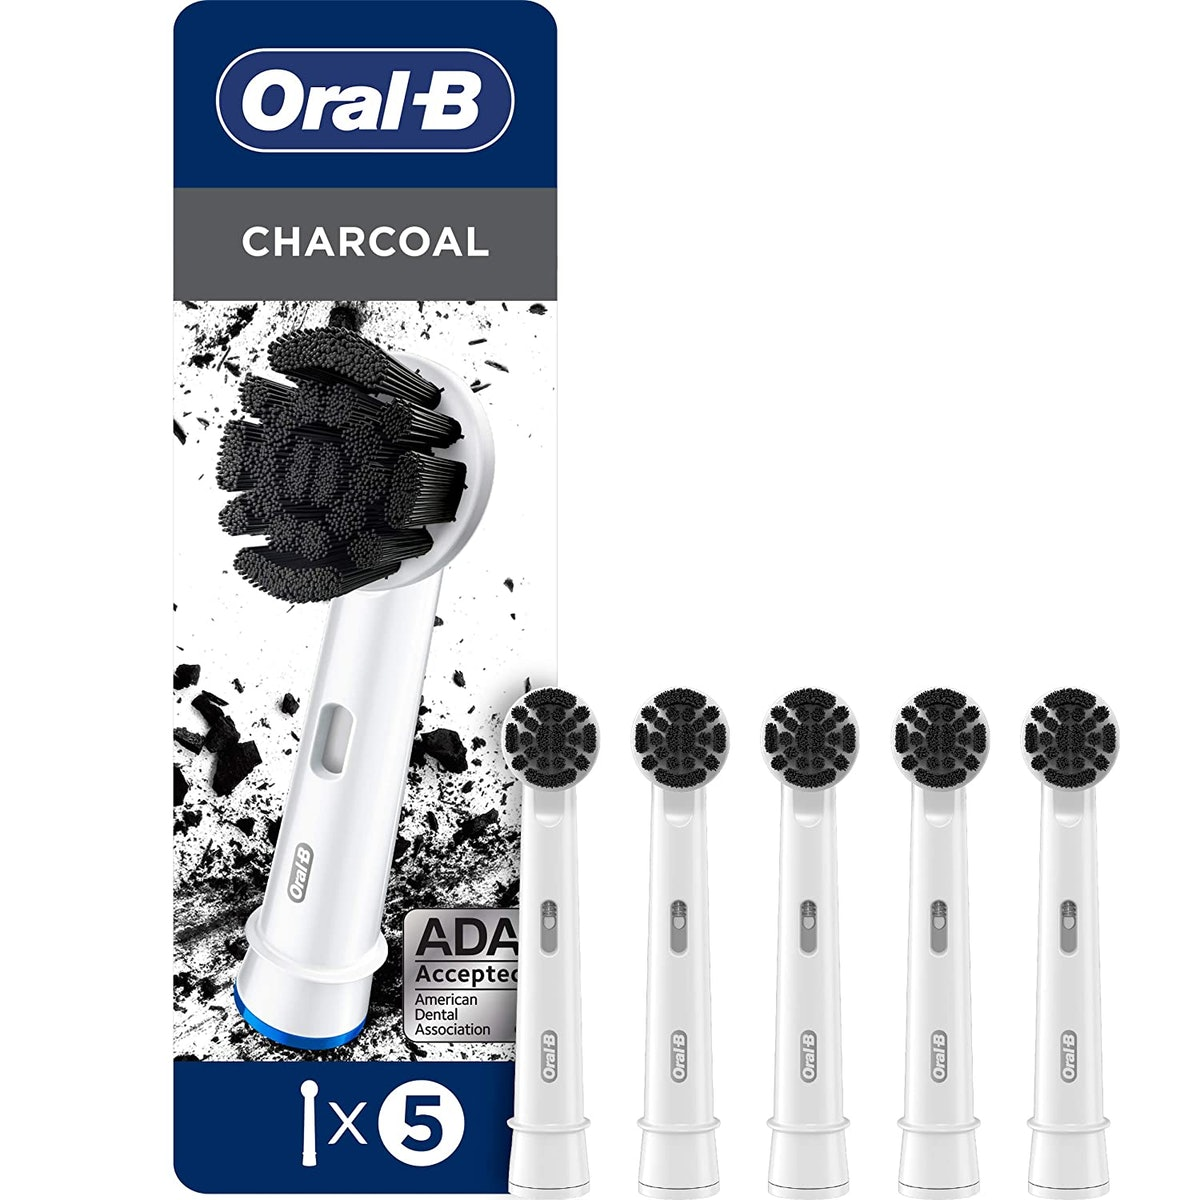 Oral-B Charcoal Electric Toothbrush Replacement Brush Heads, 5 Count